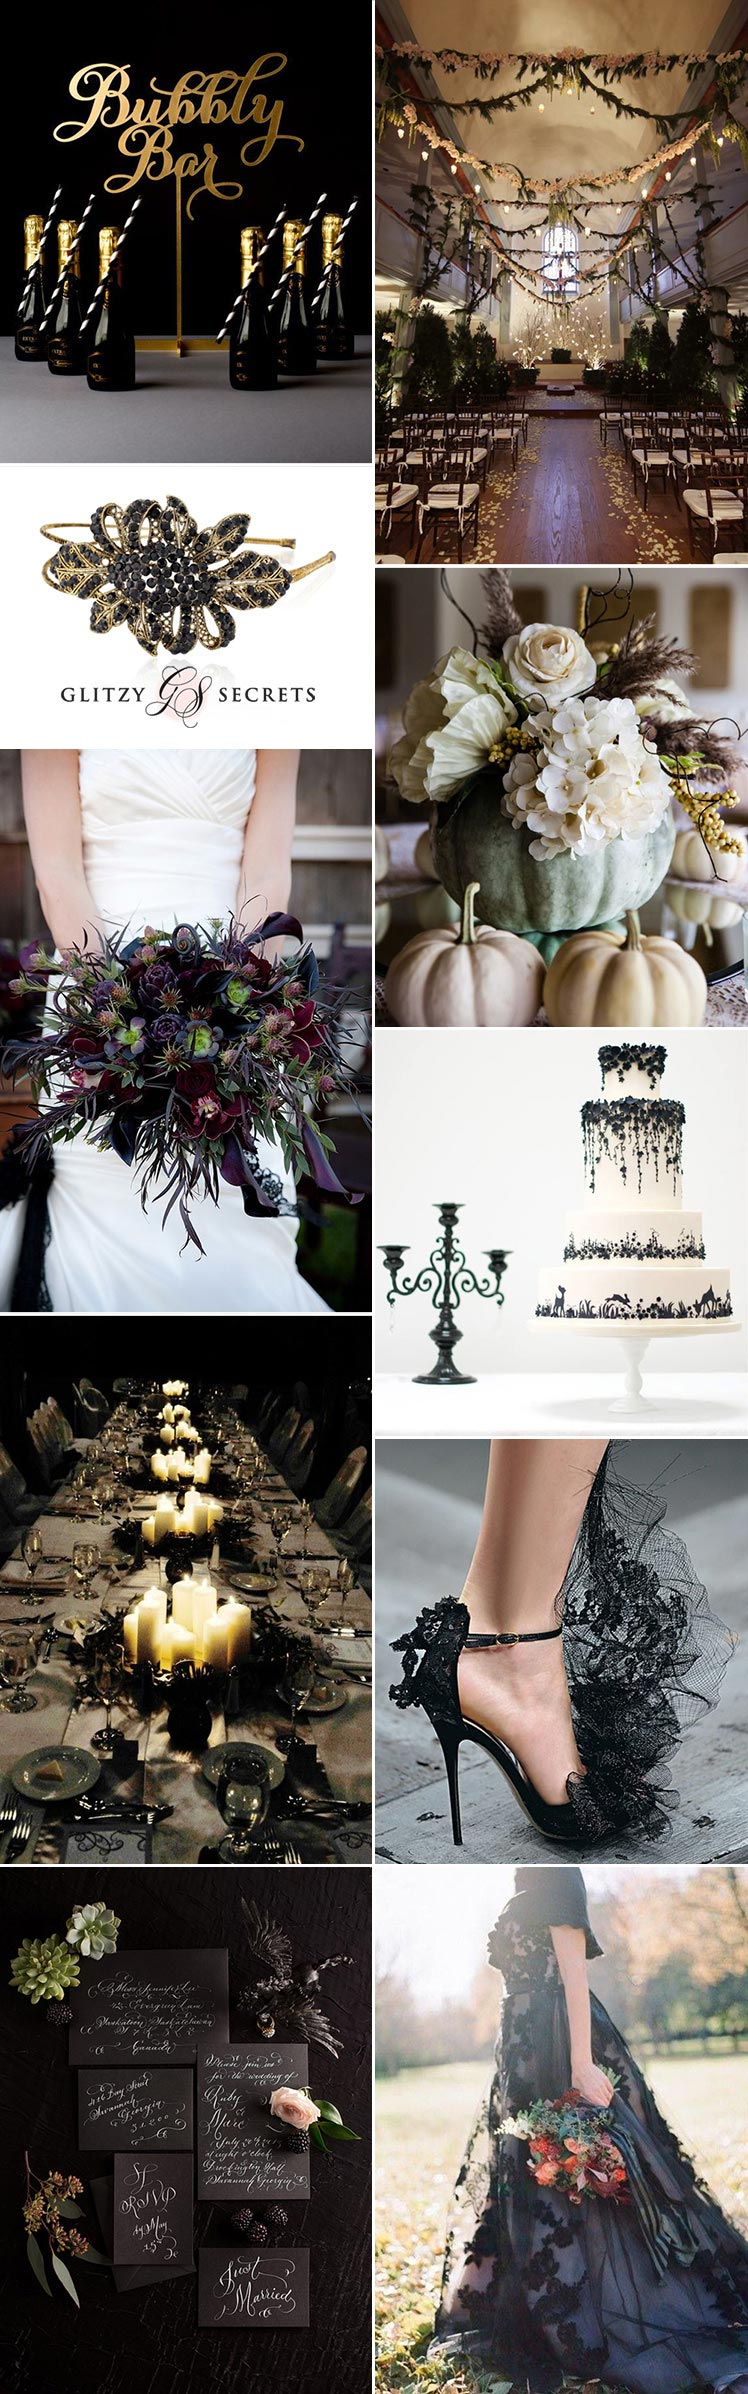 Halloween Themed Wedding Ideas with an edge